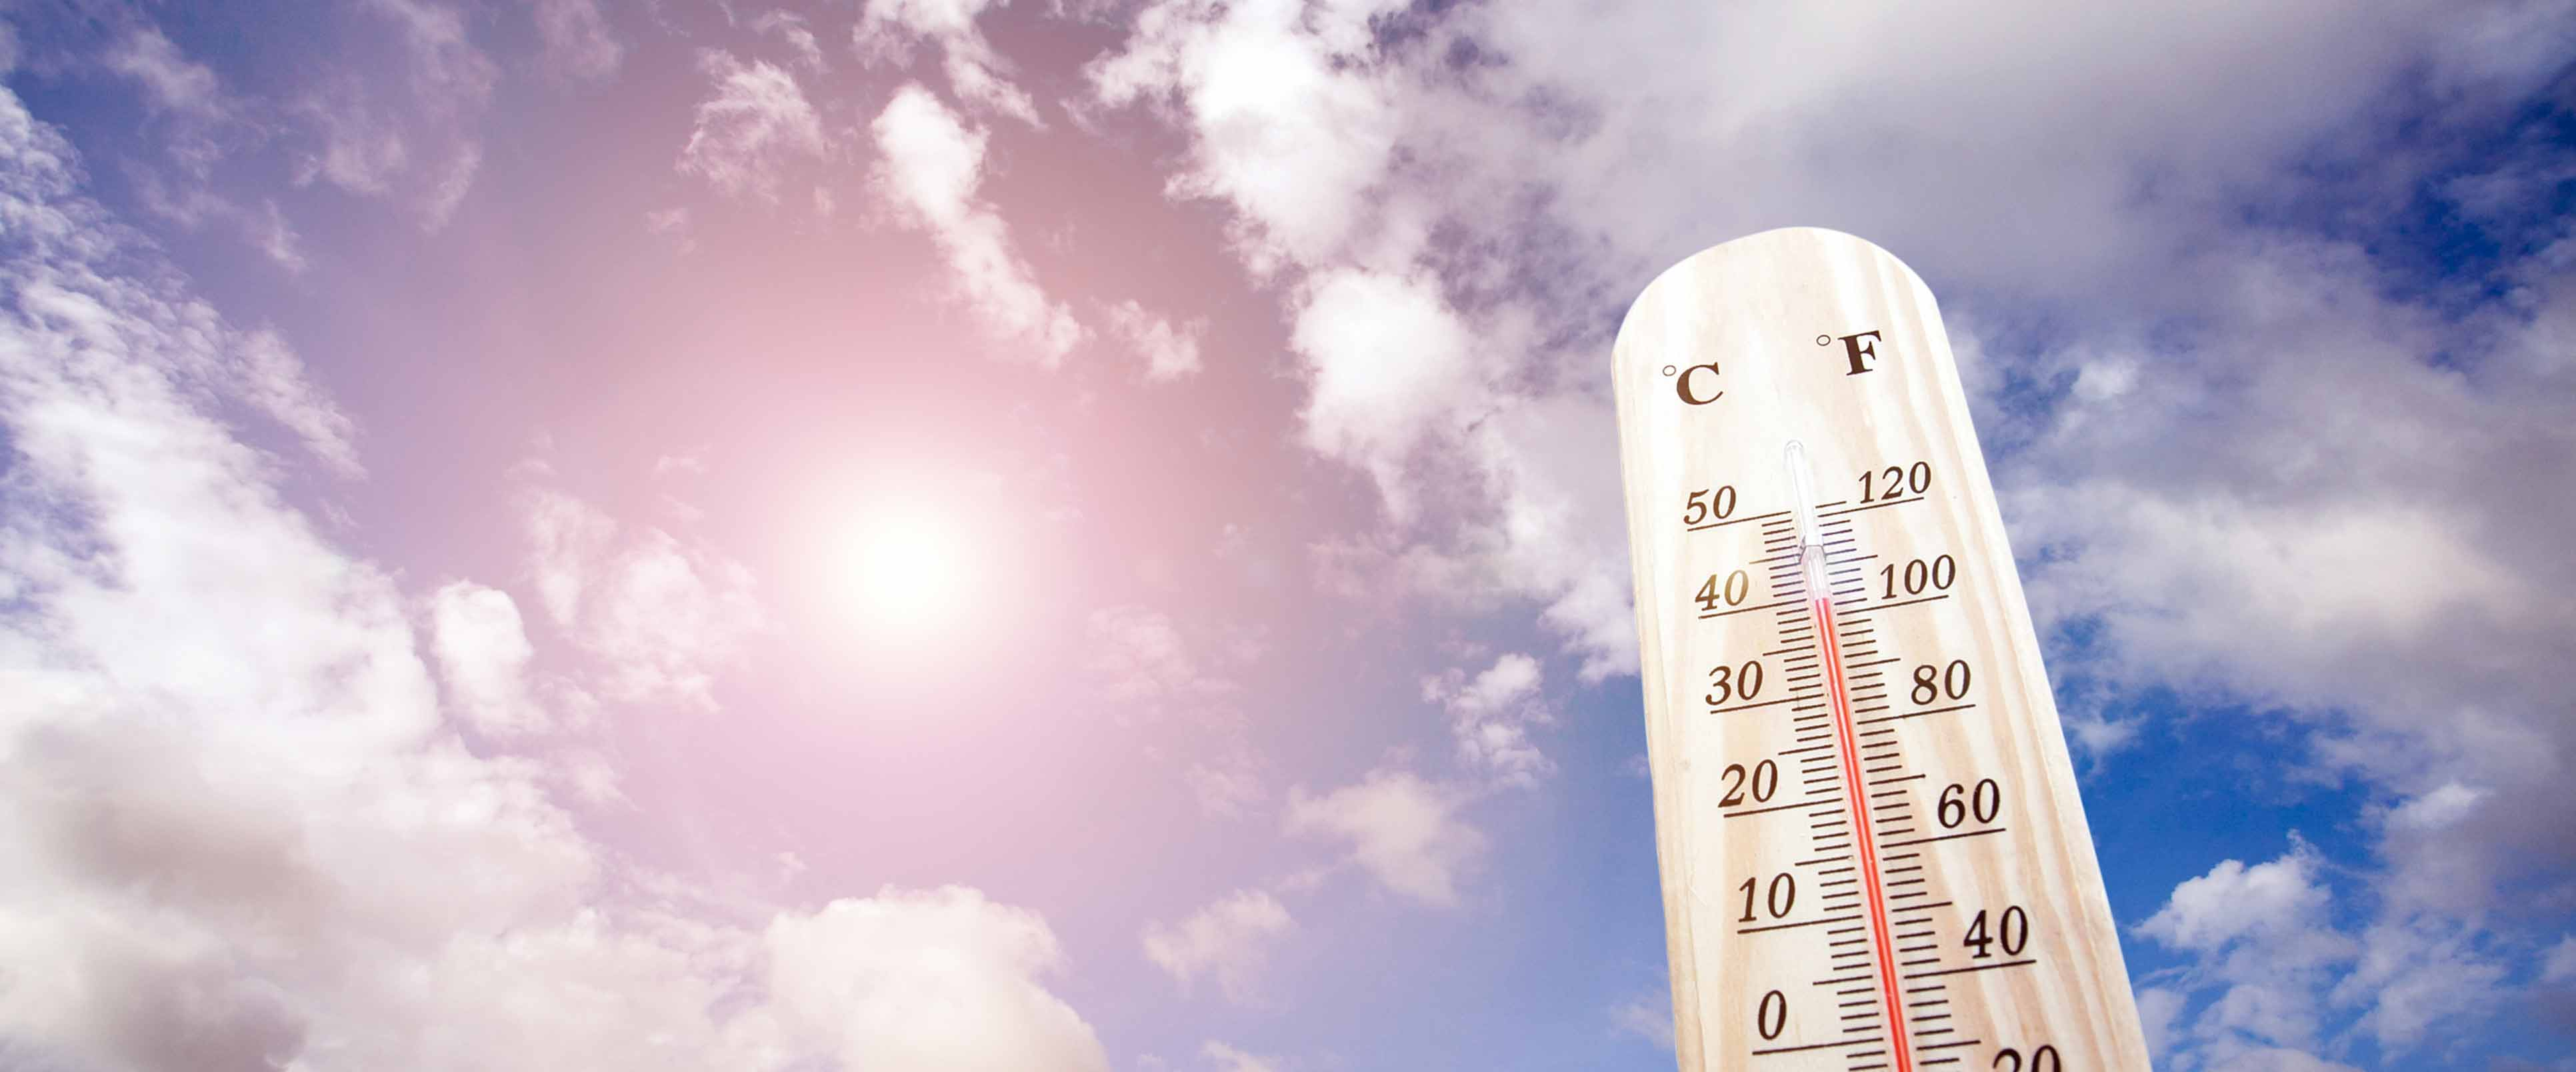 Thermometer in praller Sonne zeigt 40 Grad Celsius